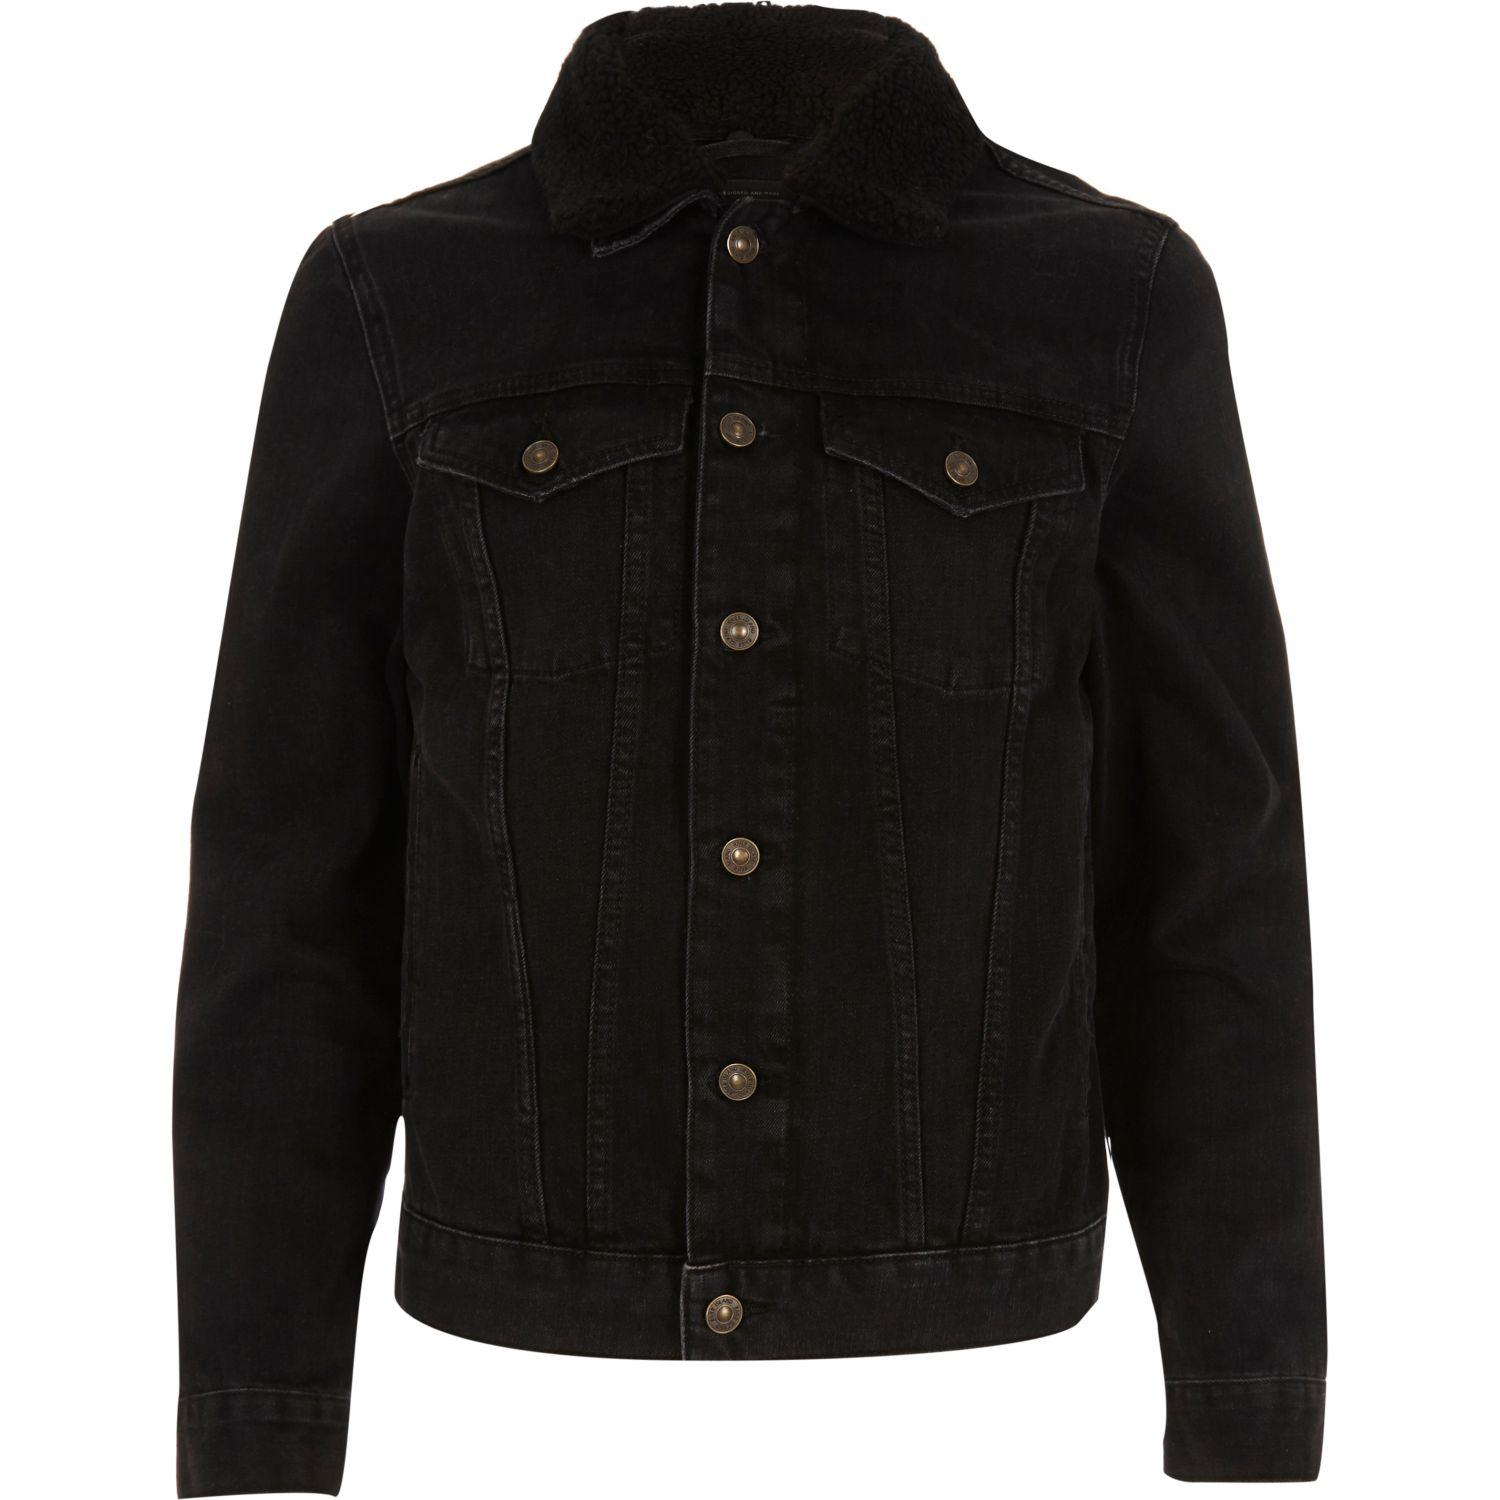 Jackets: Free Shipping on orders over $45 at xajk8note.ml - Your Online Jackets Store! Get 5% in rewards with Club O! Five Elementz Men's Denim Trucker Jacket. 5 Reviews. Quick View Men's Black Leather Vented Motorcycle Jacket With Side Lace. 22 .